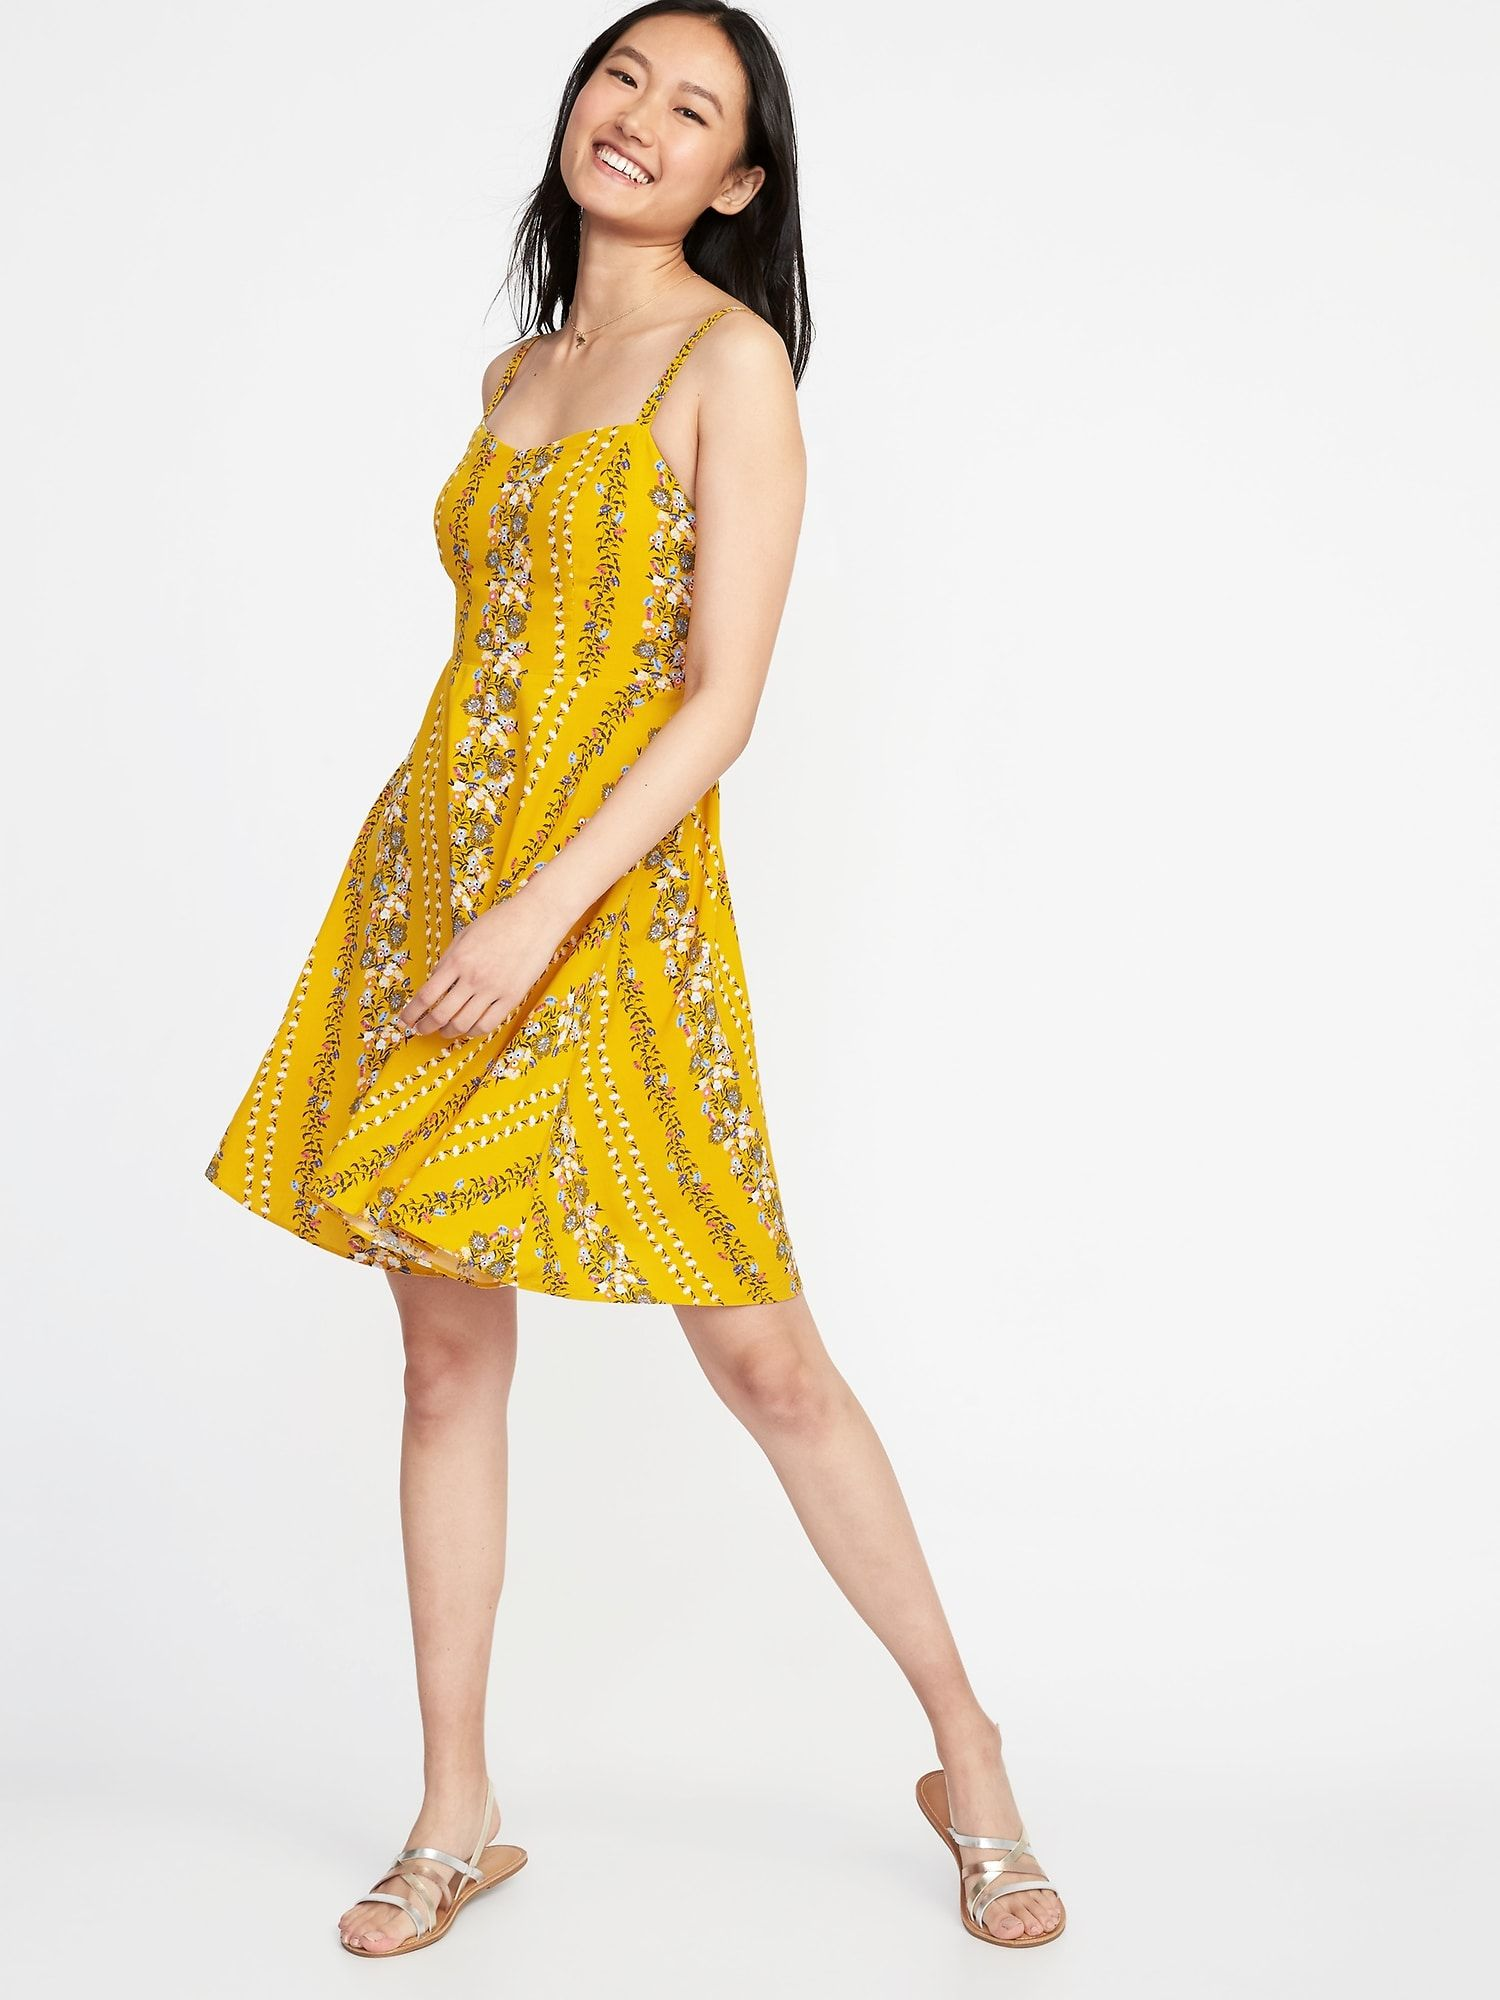 332299fba1b08 Fit & Flare Printed Cami Dress for Women Plus Size Sundress, Yellow  Sundress,